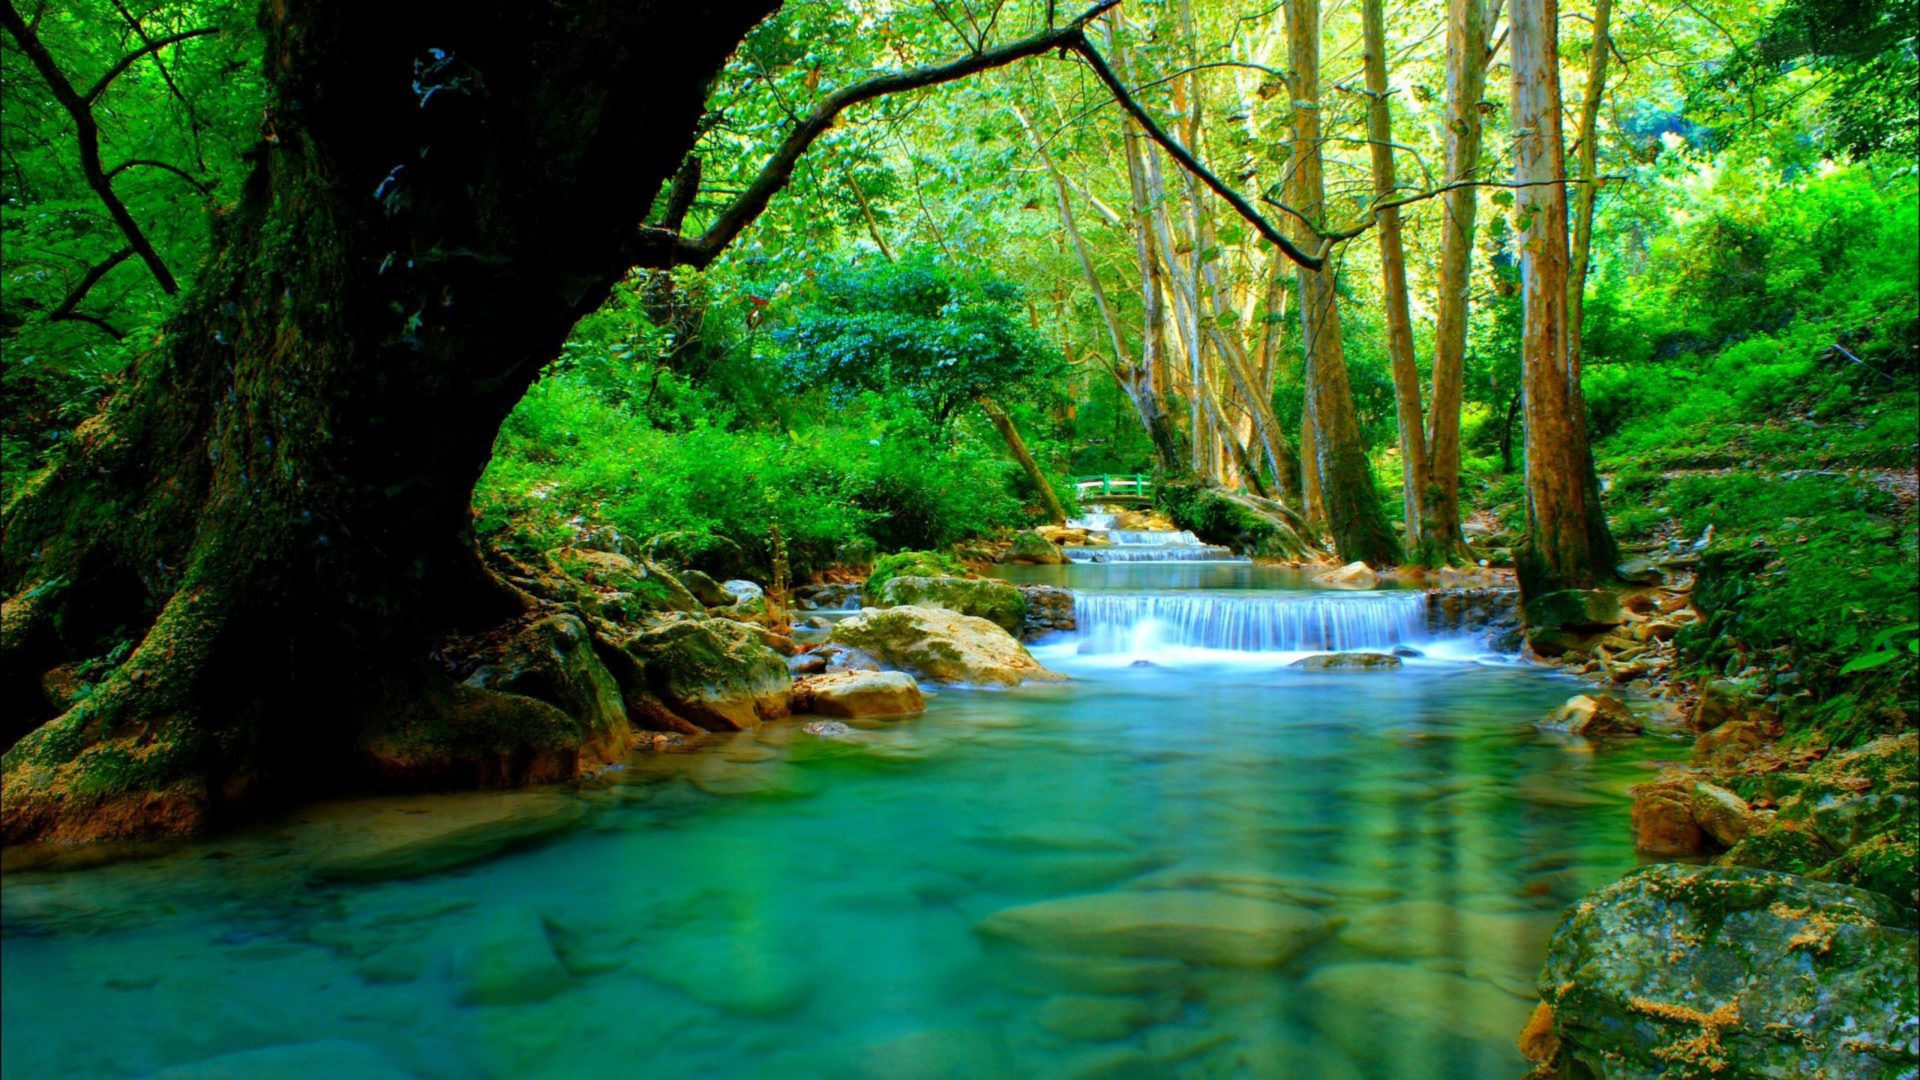 Fall Flowers Wallpaper For Desktop Forest River With Cascades Turquoise Water Rocks Trees